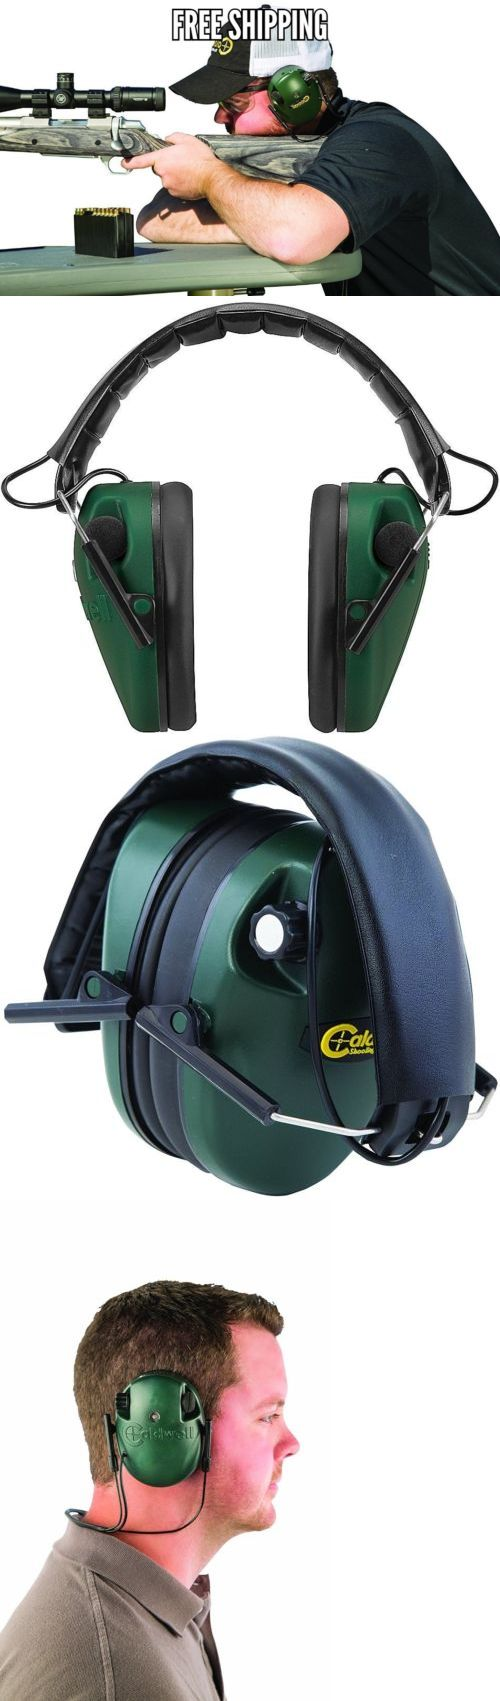 Hearing Protection 73942: Green Electronic Ear Muffs Low Profile Shooting Hearing Sport Leight Protection -> BUY IT NOW ONLY: $34.9 on eBay!